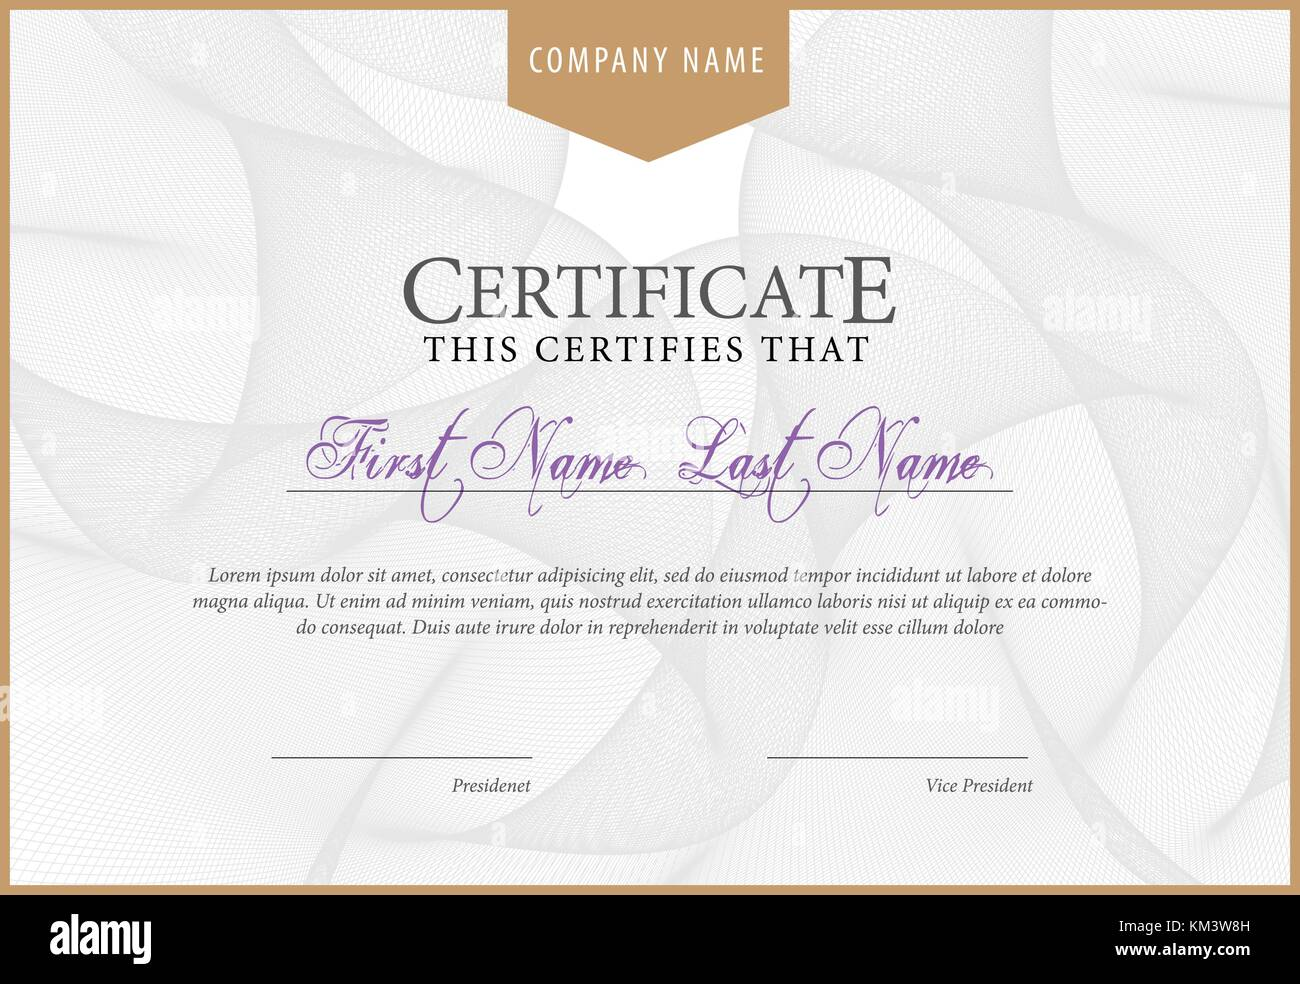 Shares Certificate Stock Photos & Shares Certificate Stock Images ...